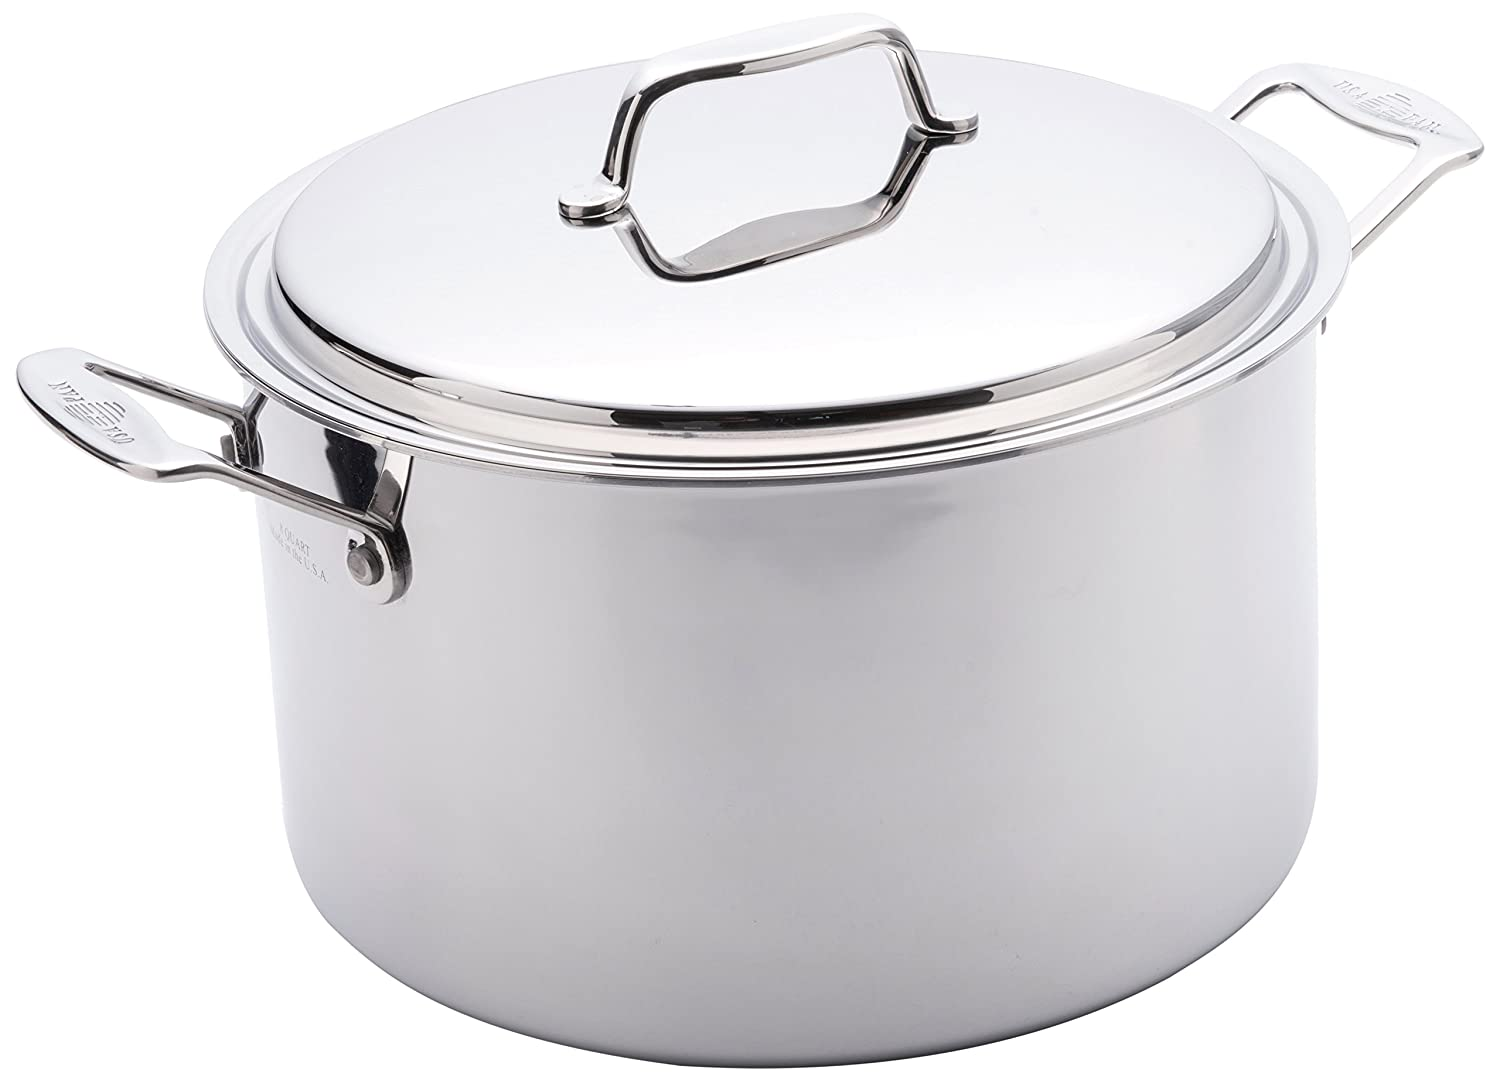 Amazon USA Pan 1520CW 1 Cookware 5 Ply Stainless Steel 8 Quart